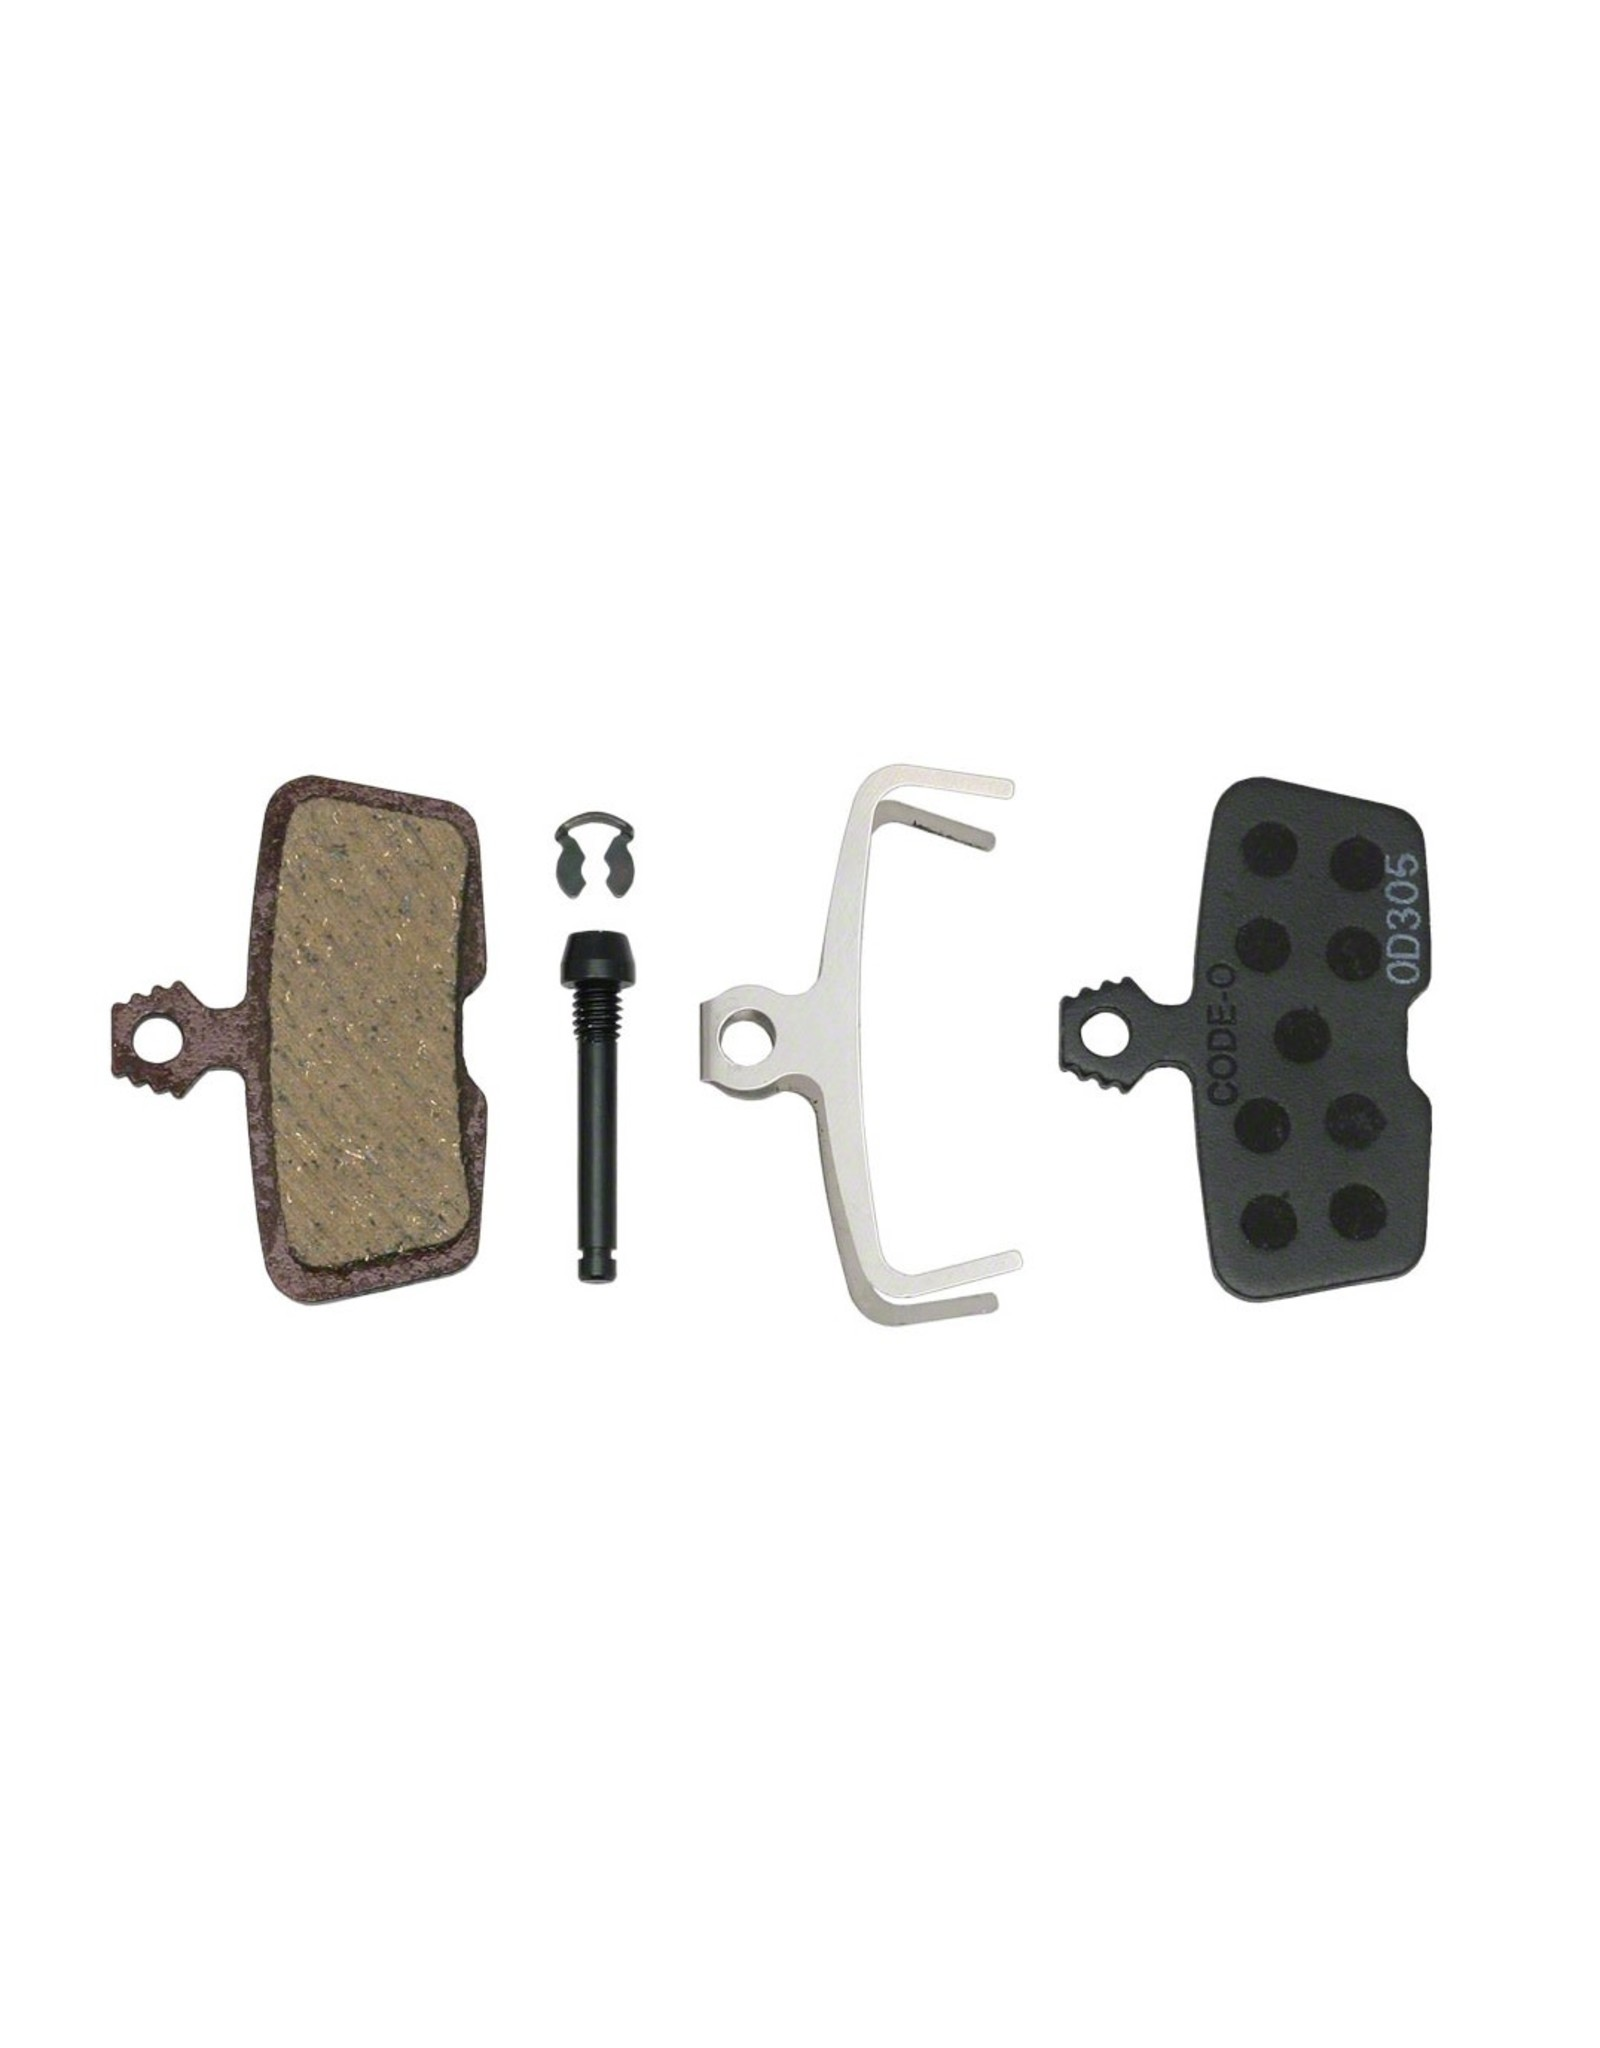 SRAM SRAM Disc Brake Pads - Organic Compound, Steel Backed, Quiet, For Code 2011+ and Guide RE